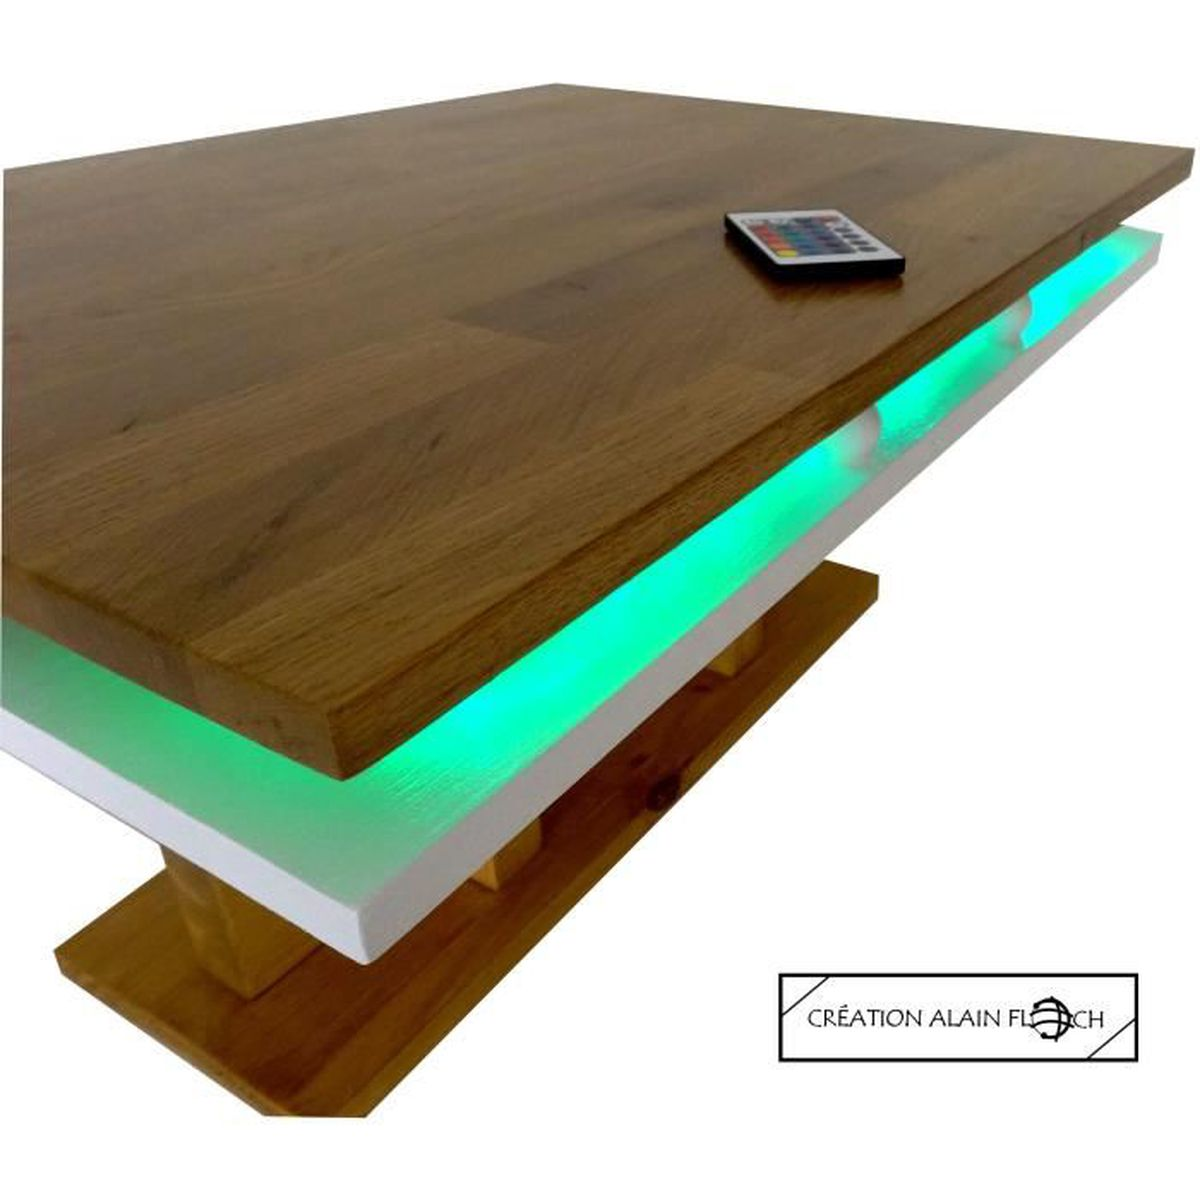 table basse guatemala design unique alain floch 100 bois massif avec eclairage 40 led 16. Black Bedroom Furniture Sets. Home Design Ideas